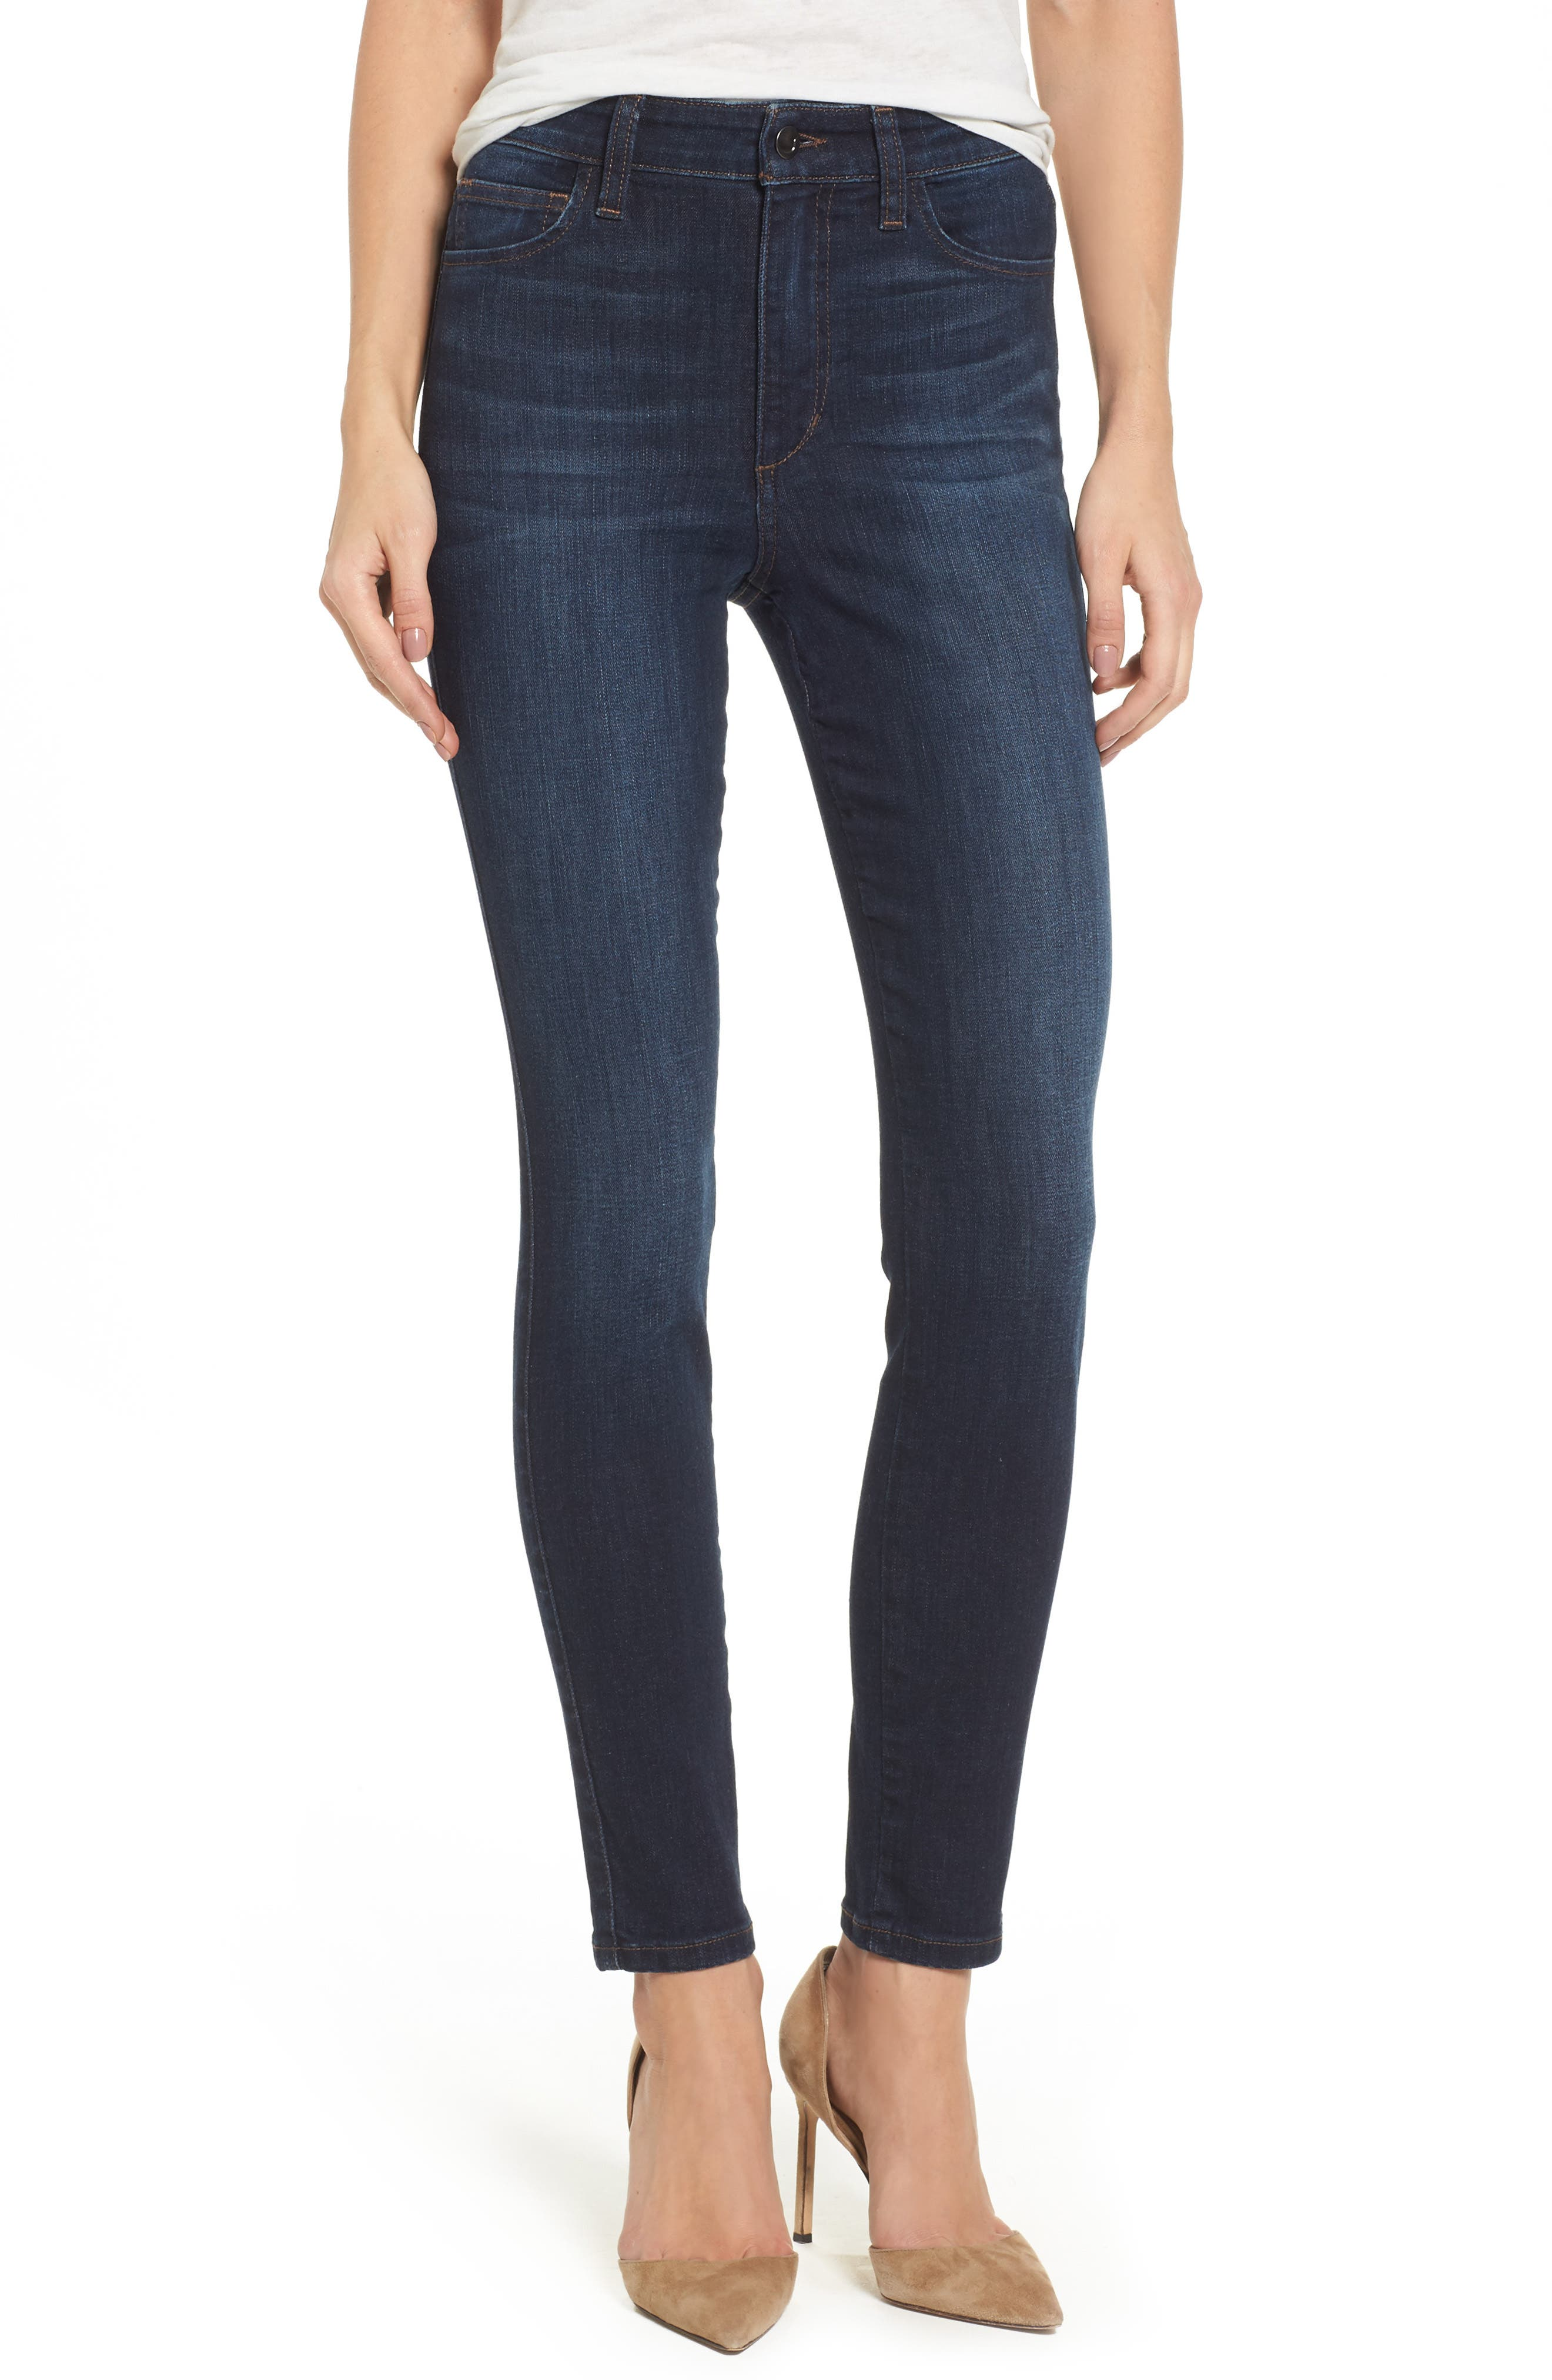 Charlie High Waist Skinny Jeans,                         Main,                         color, 405